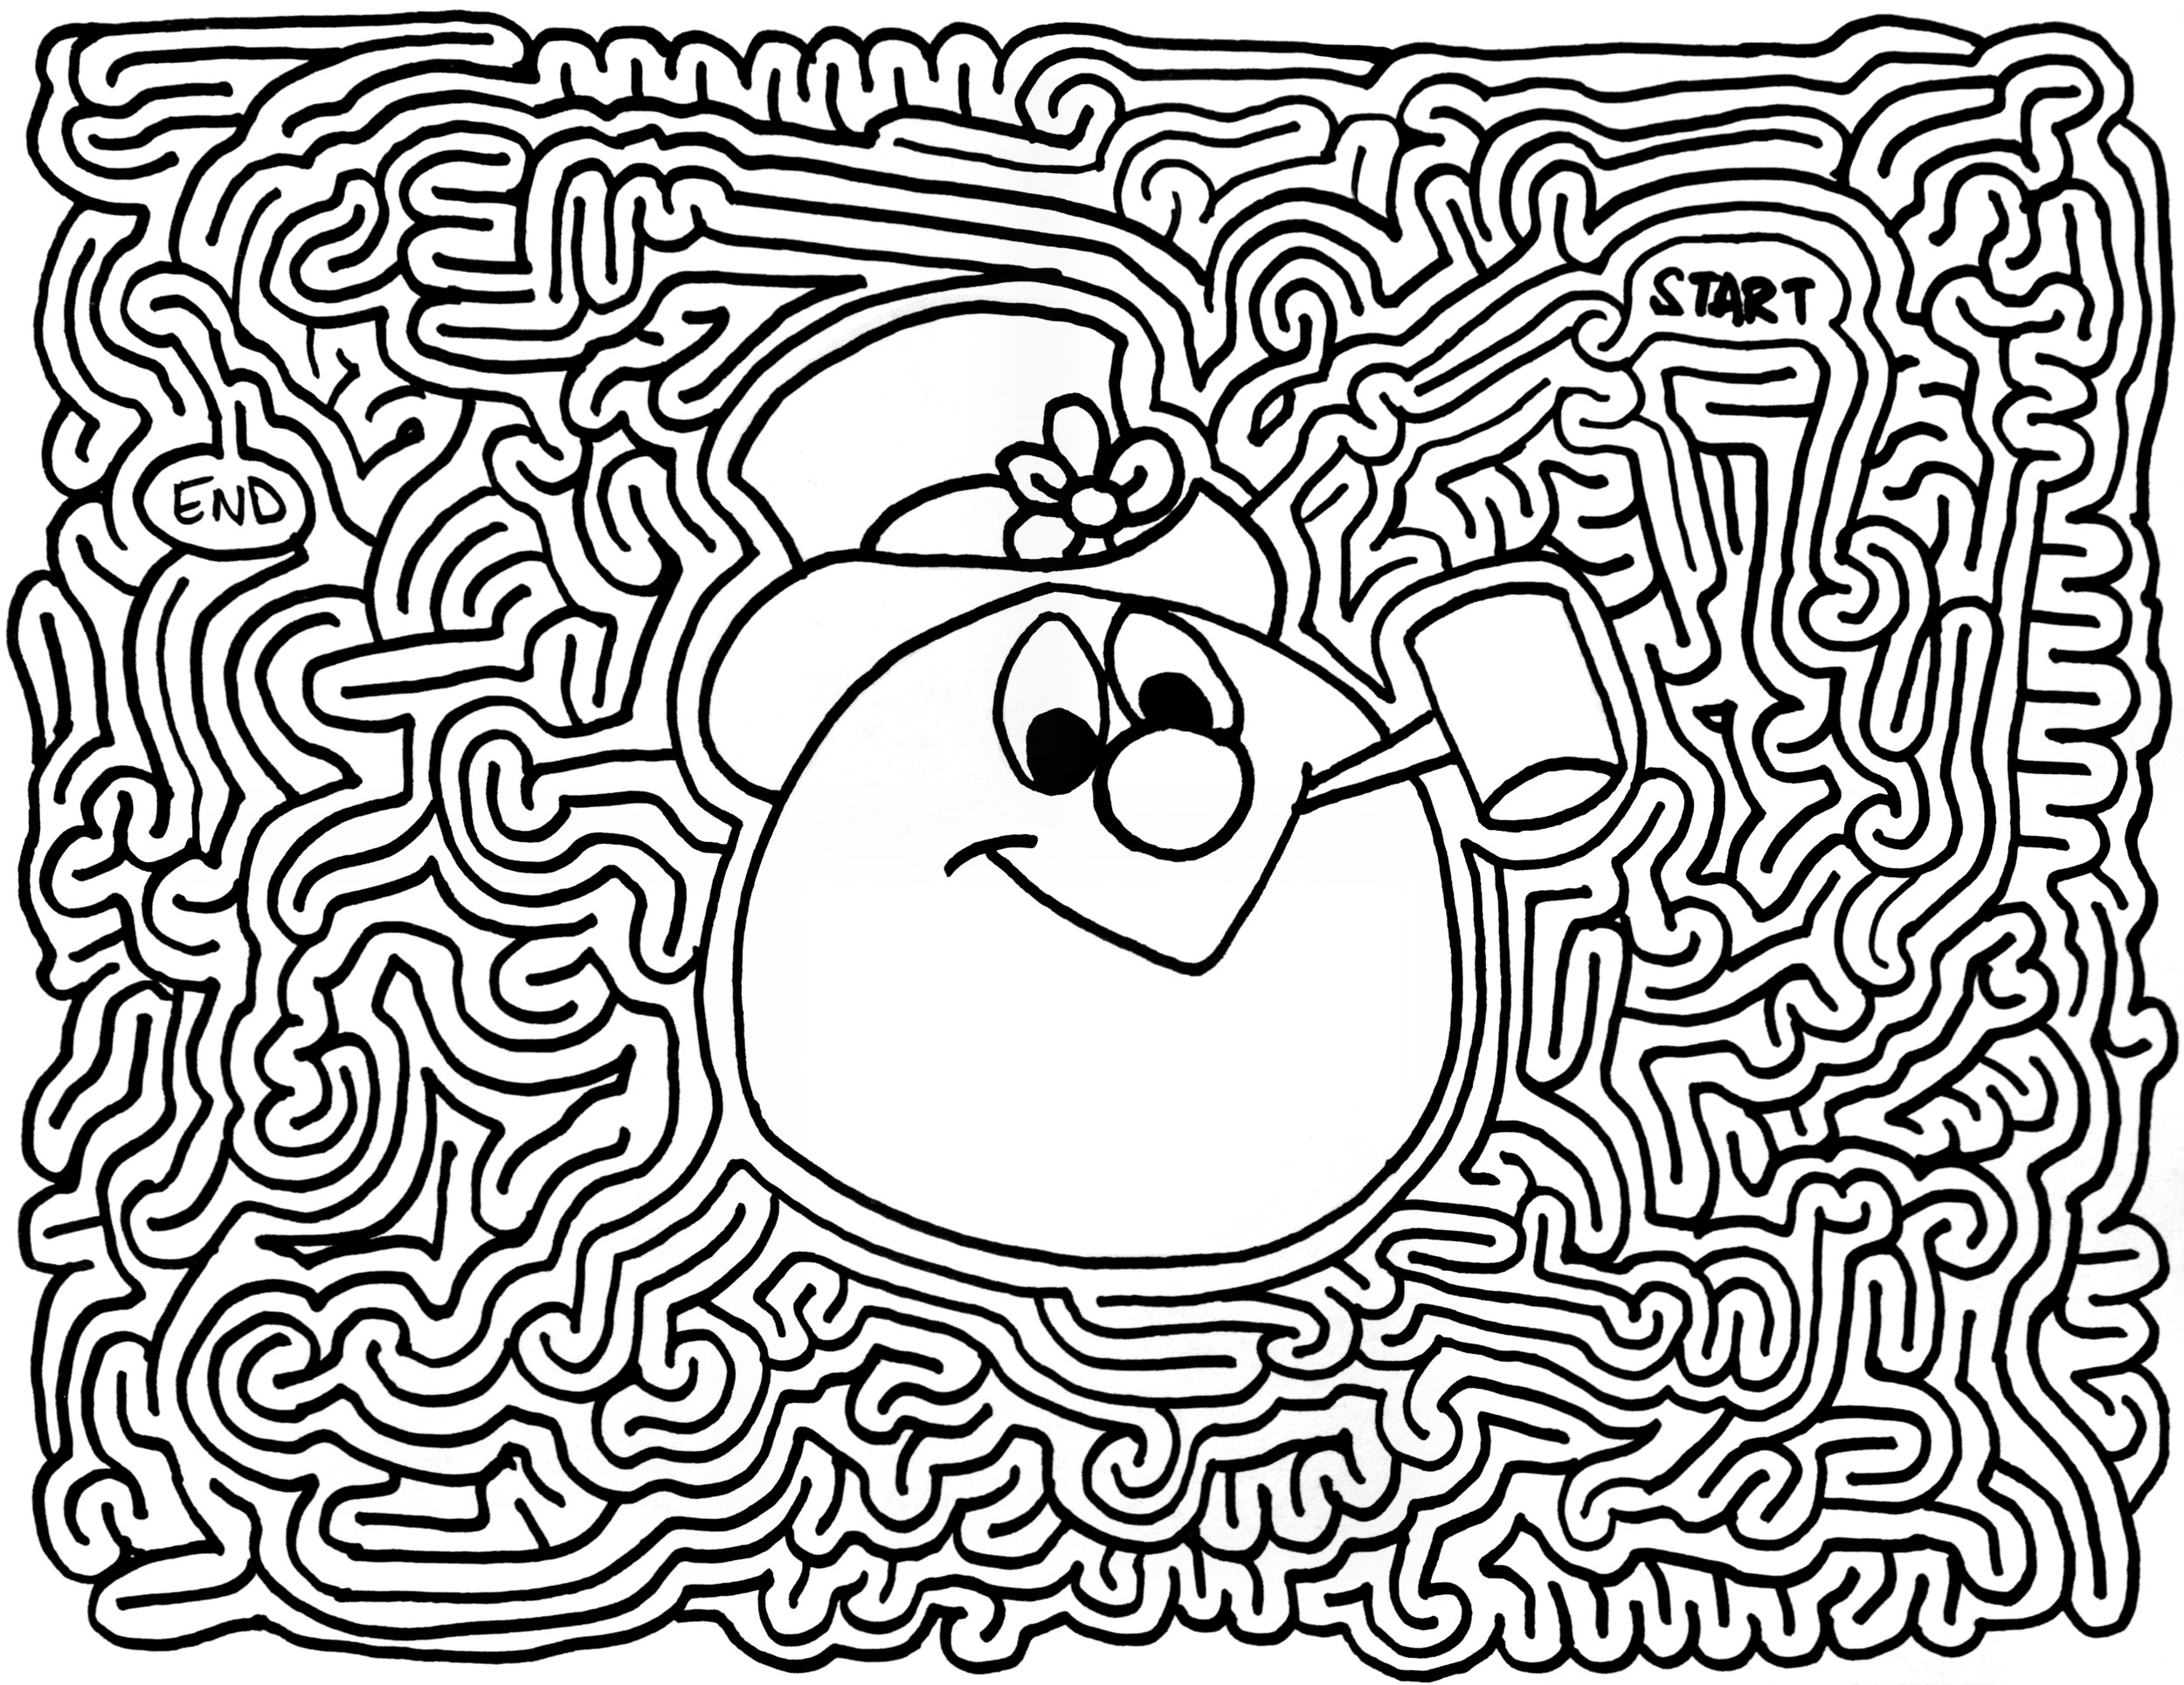 mazes frosty the snowman by eric j eckert